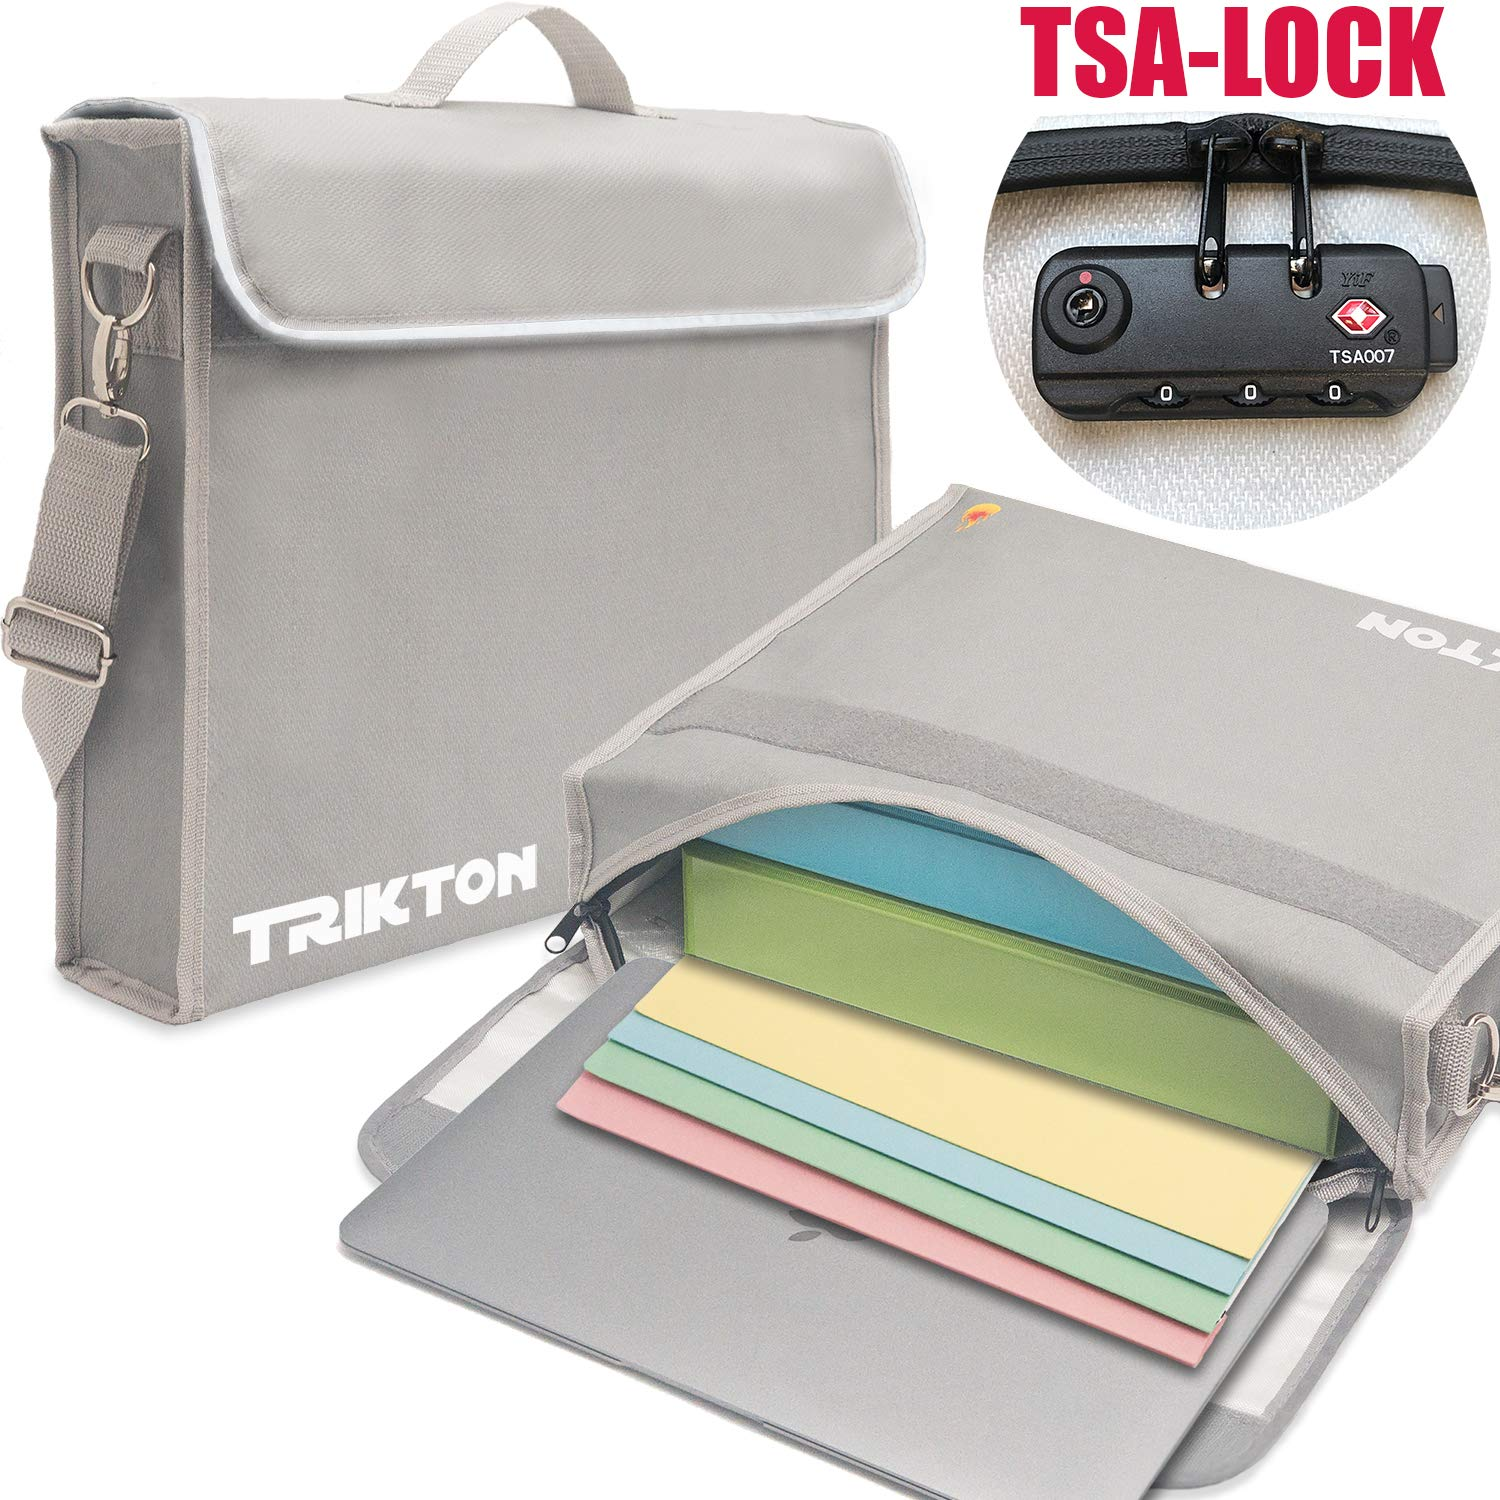 Trikton Fireproof Document Safe Bag with Lock TSA, XL Silver, Visible in The Dark, Stores Bulky Binders Without Fold Them, X-Large 15x12x3 Fire and Water-Resistant Briefcase   Lock Box for Documents